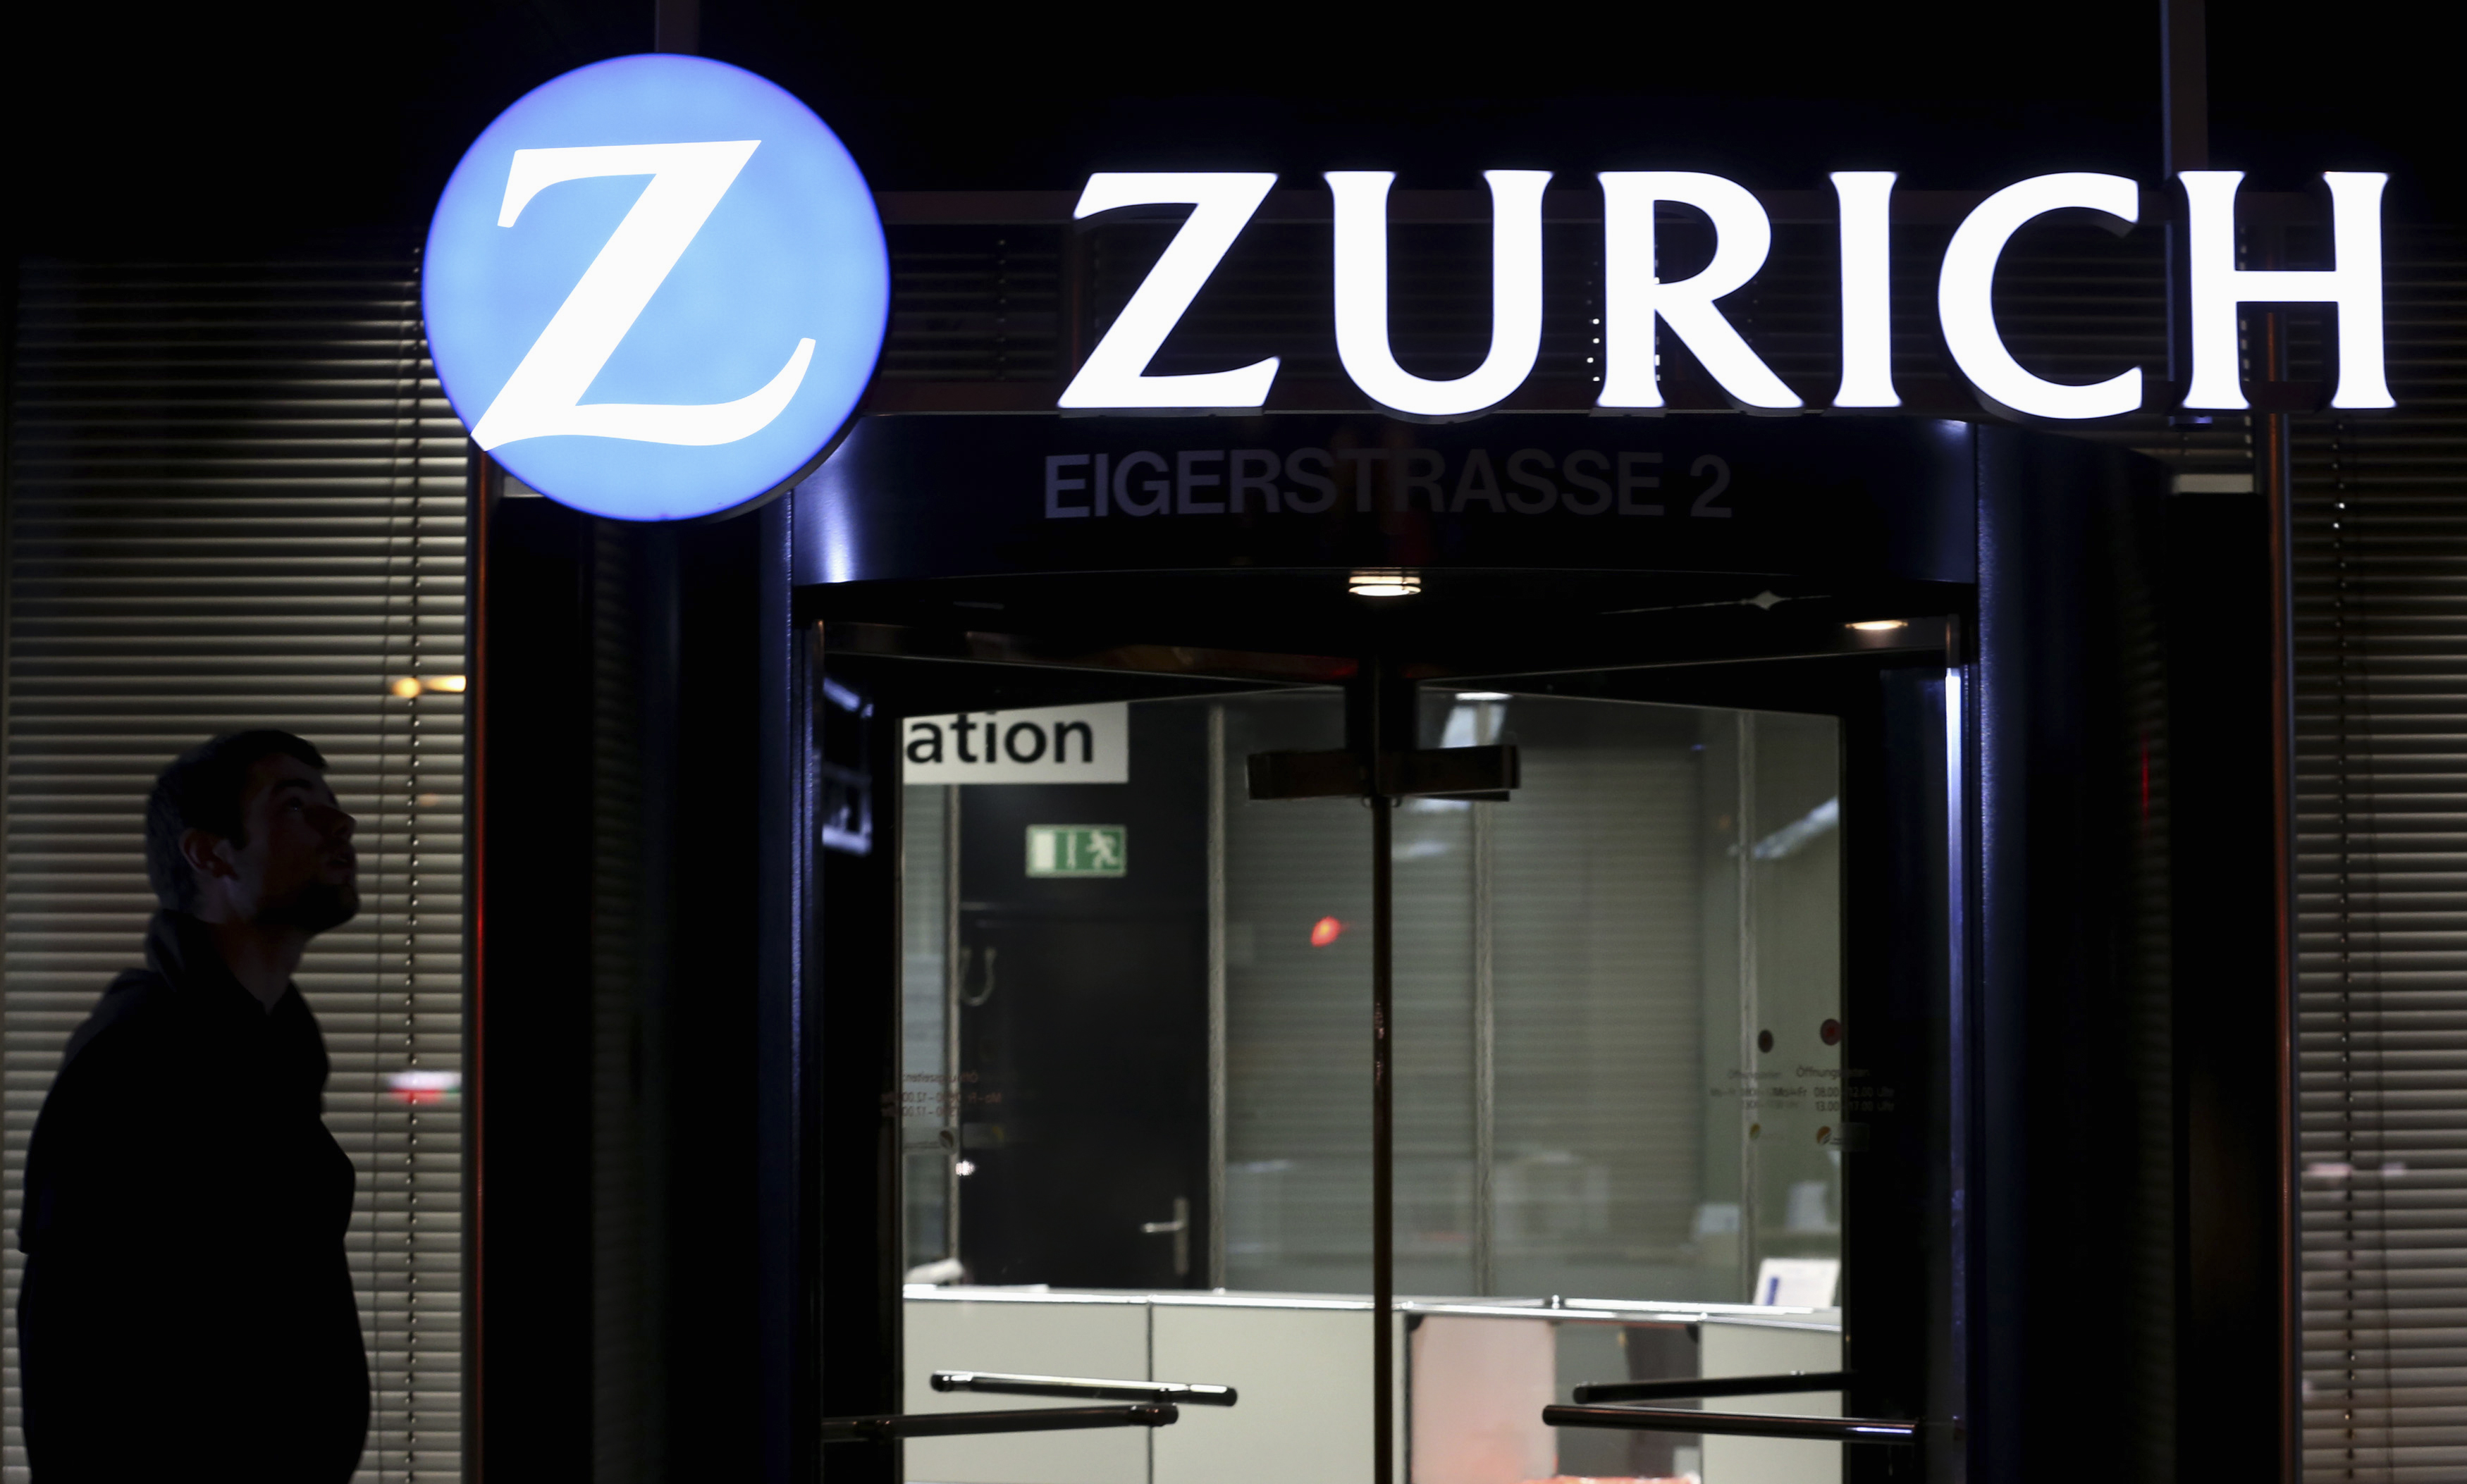 The logo of Zurich Insurance Group is seen on a building in Bern